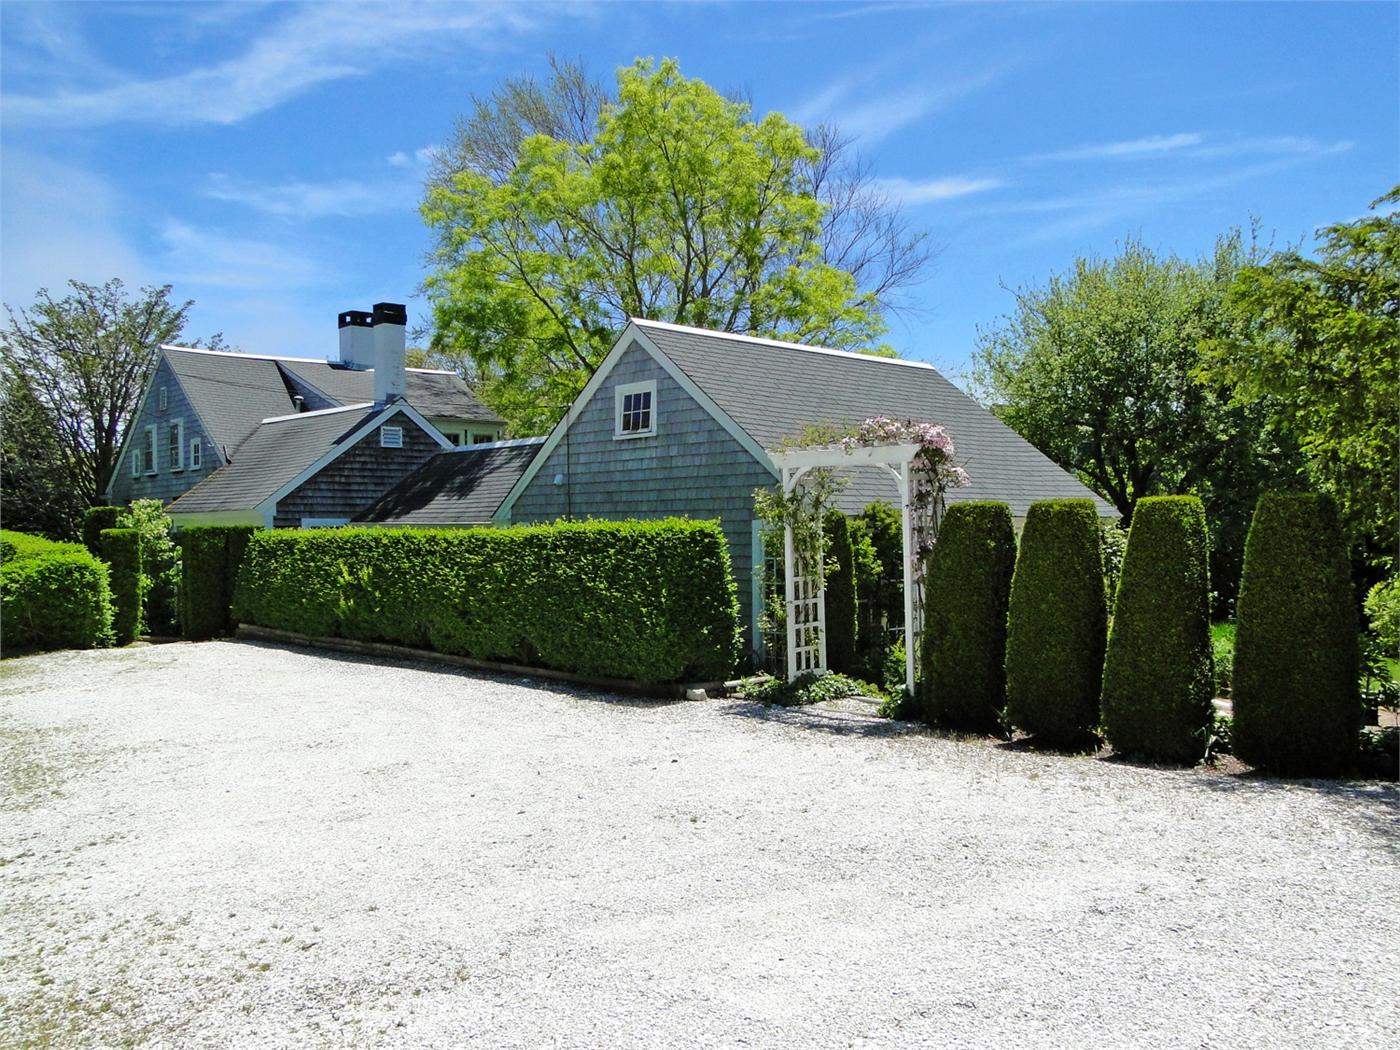 Chatham Vacation Rental Home In Cape Cod Ma 02659 3 10 M